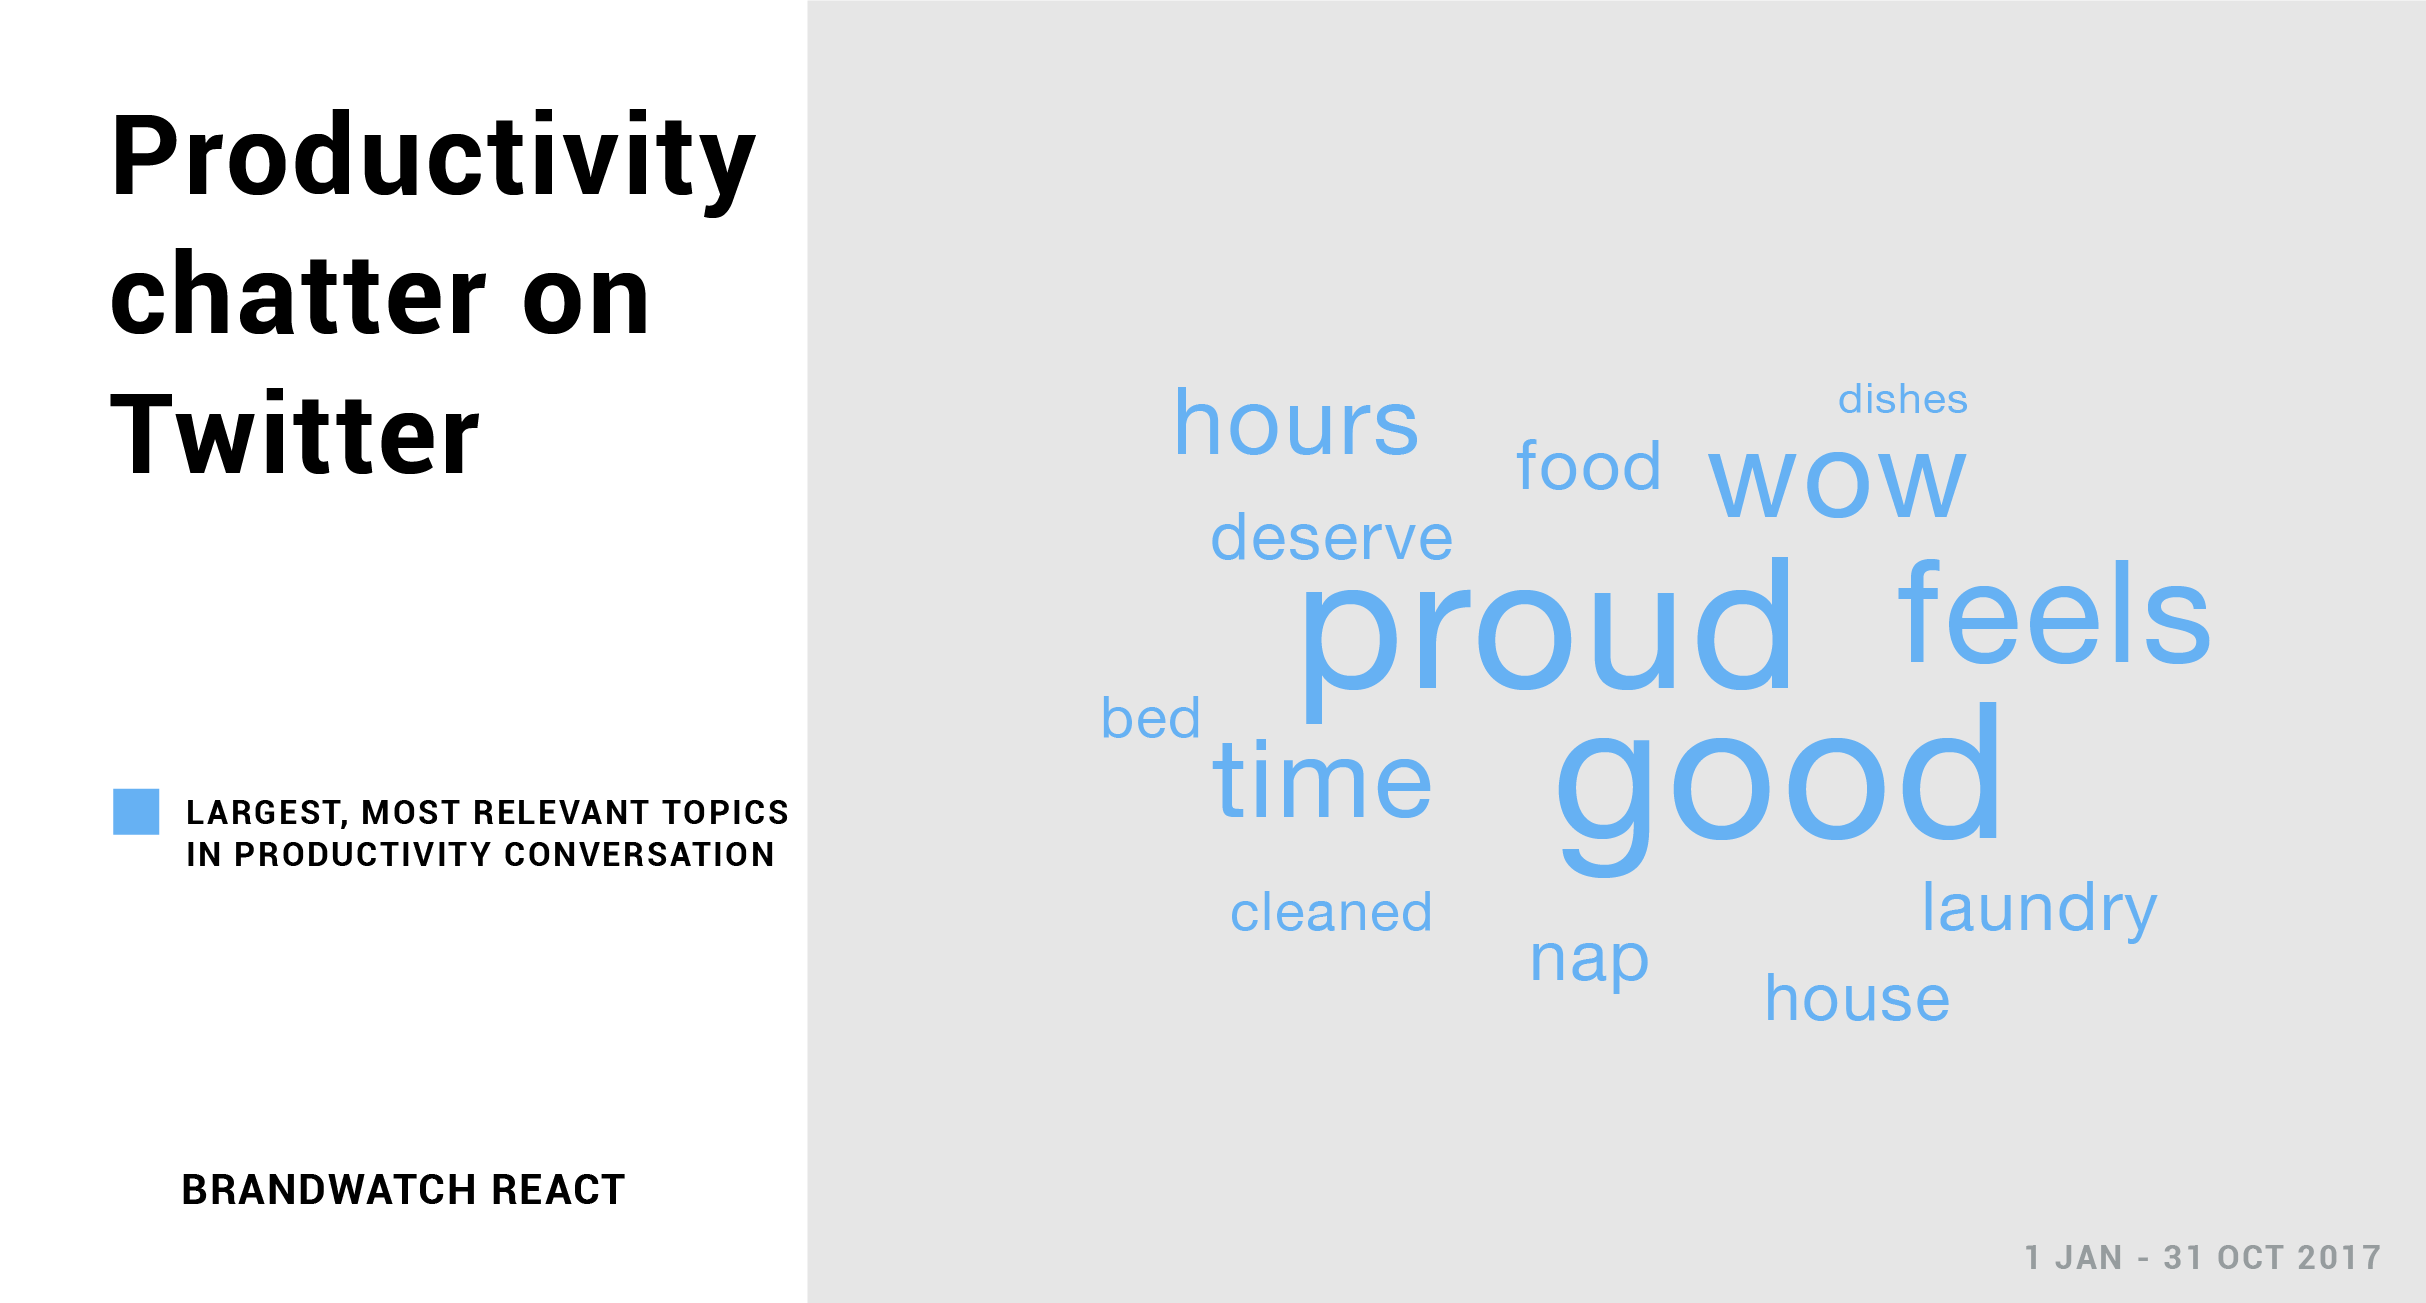 A topic cloud shows key words associated with being productive on Twitter. Bed, food, dishes, cleaned, laundry, house and nap are among them